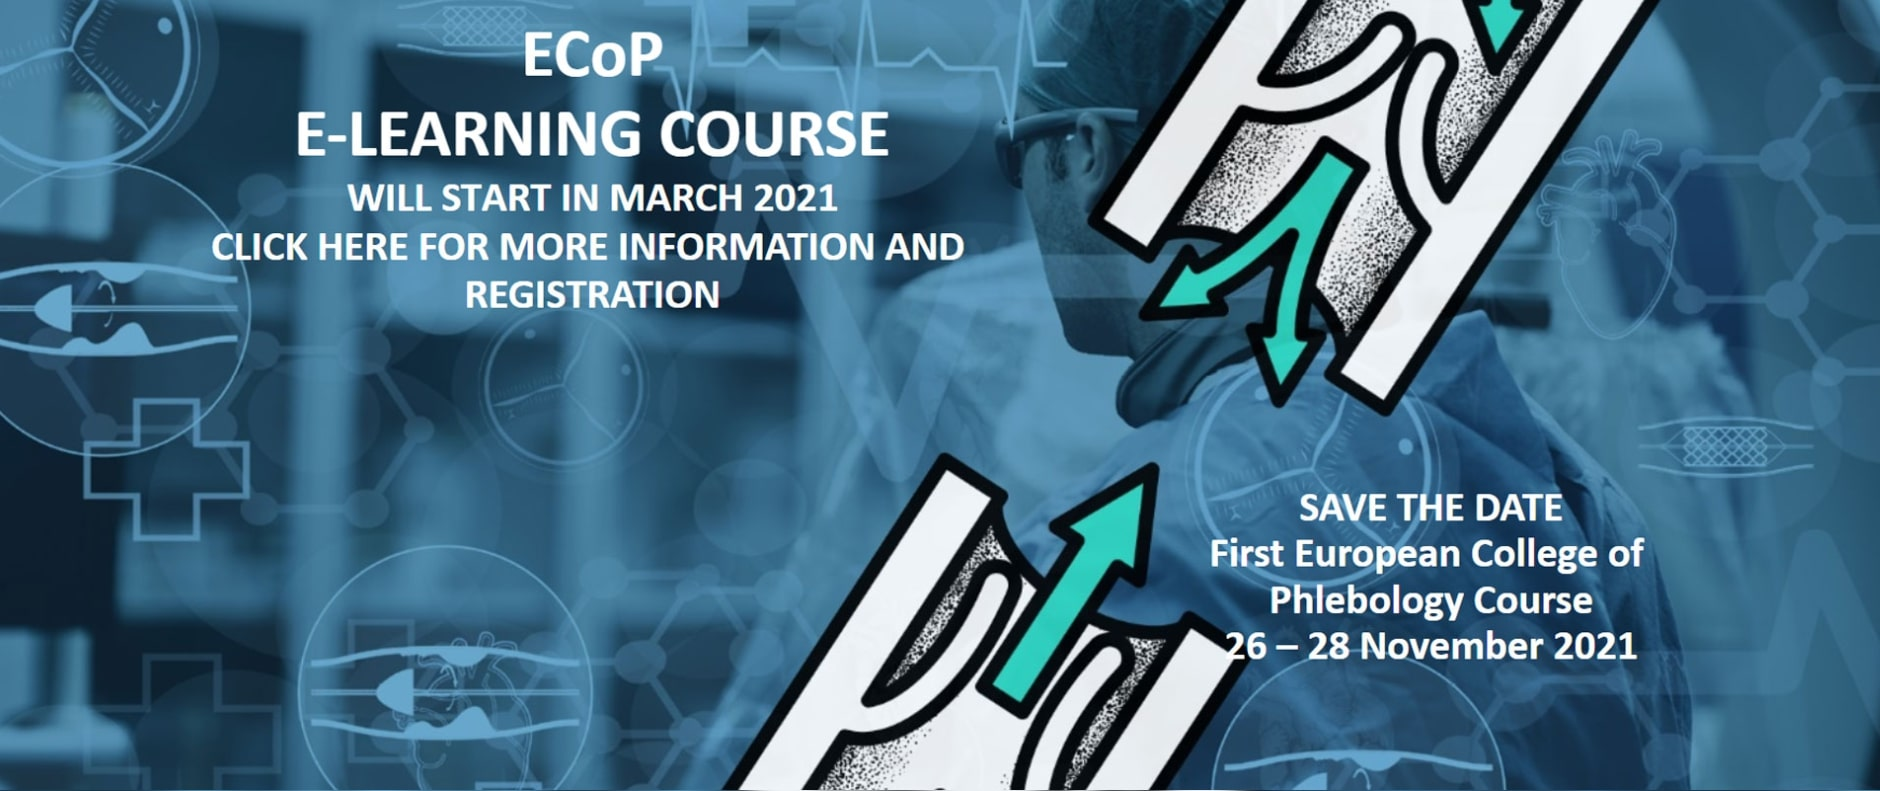 March-November 2021 ECoP E-LEARNING COURSE